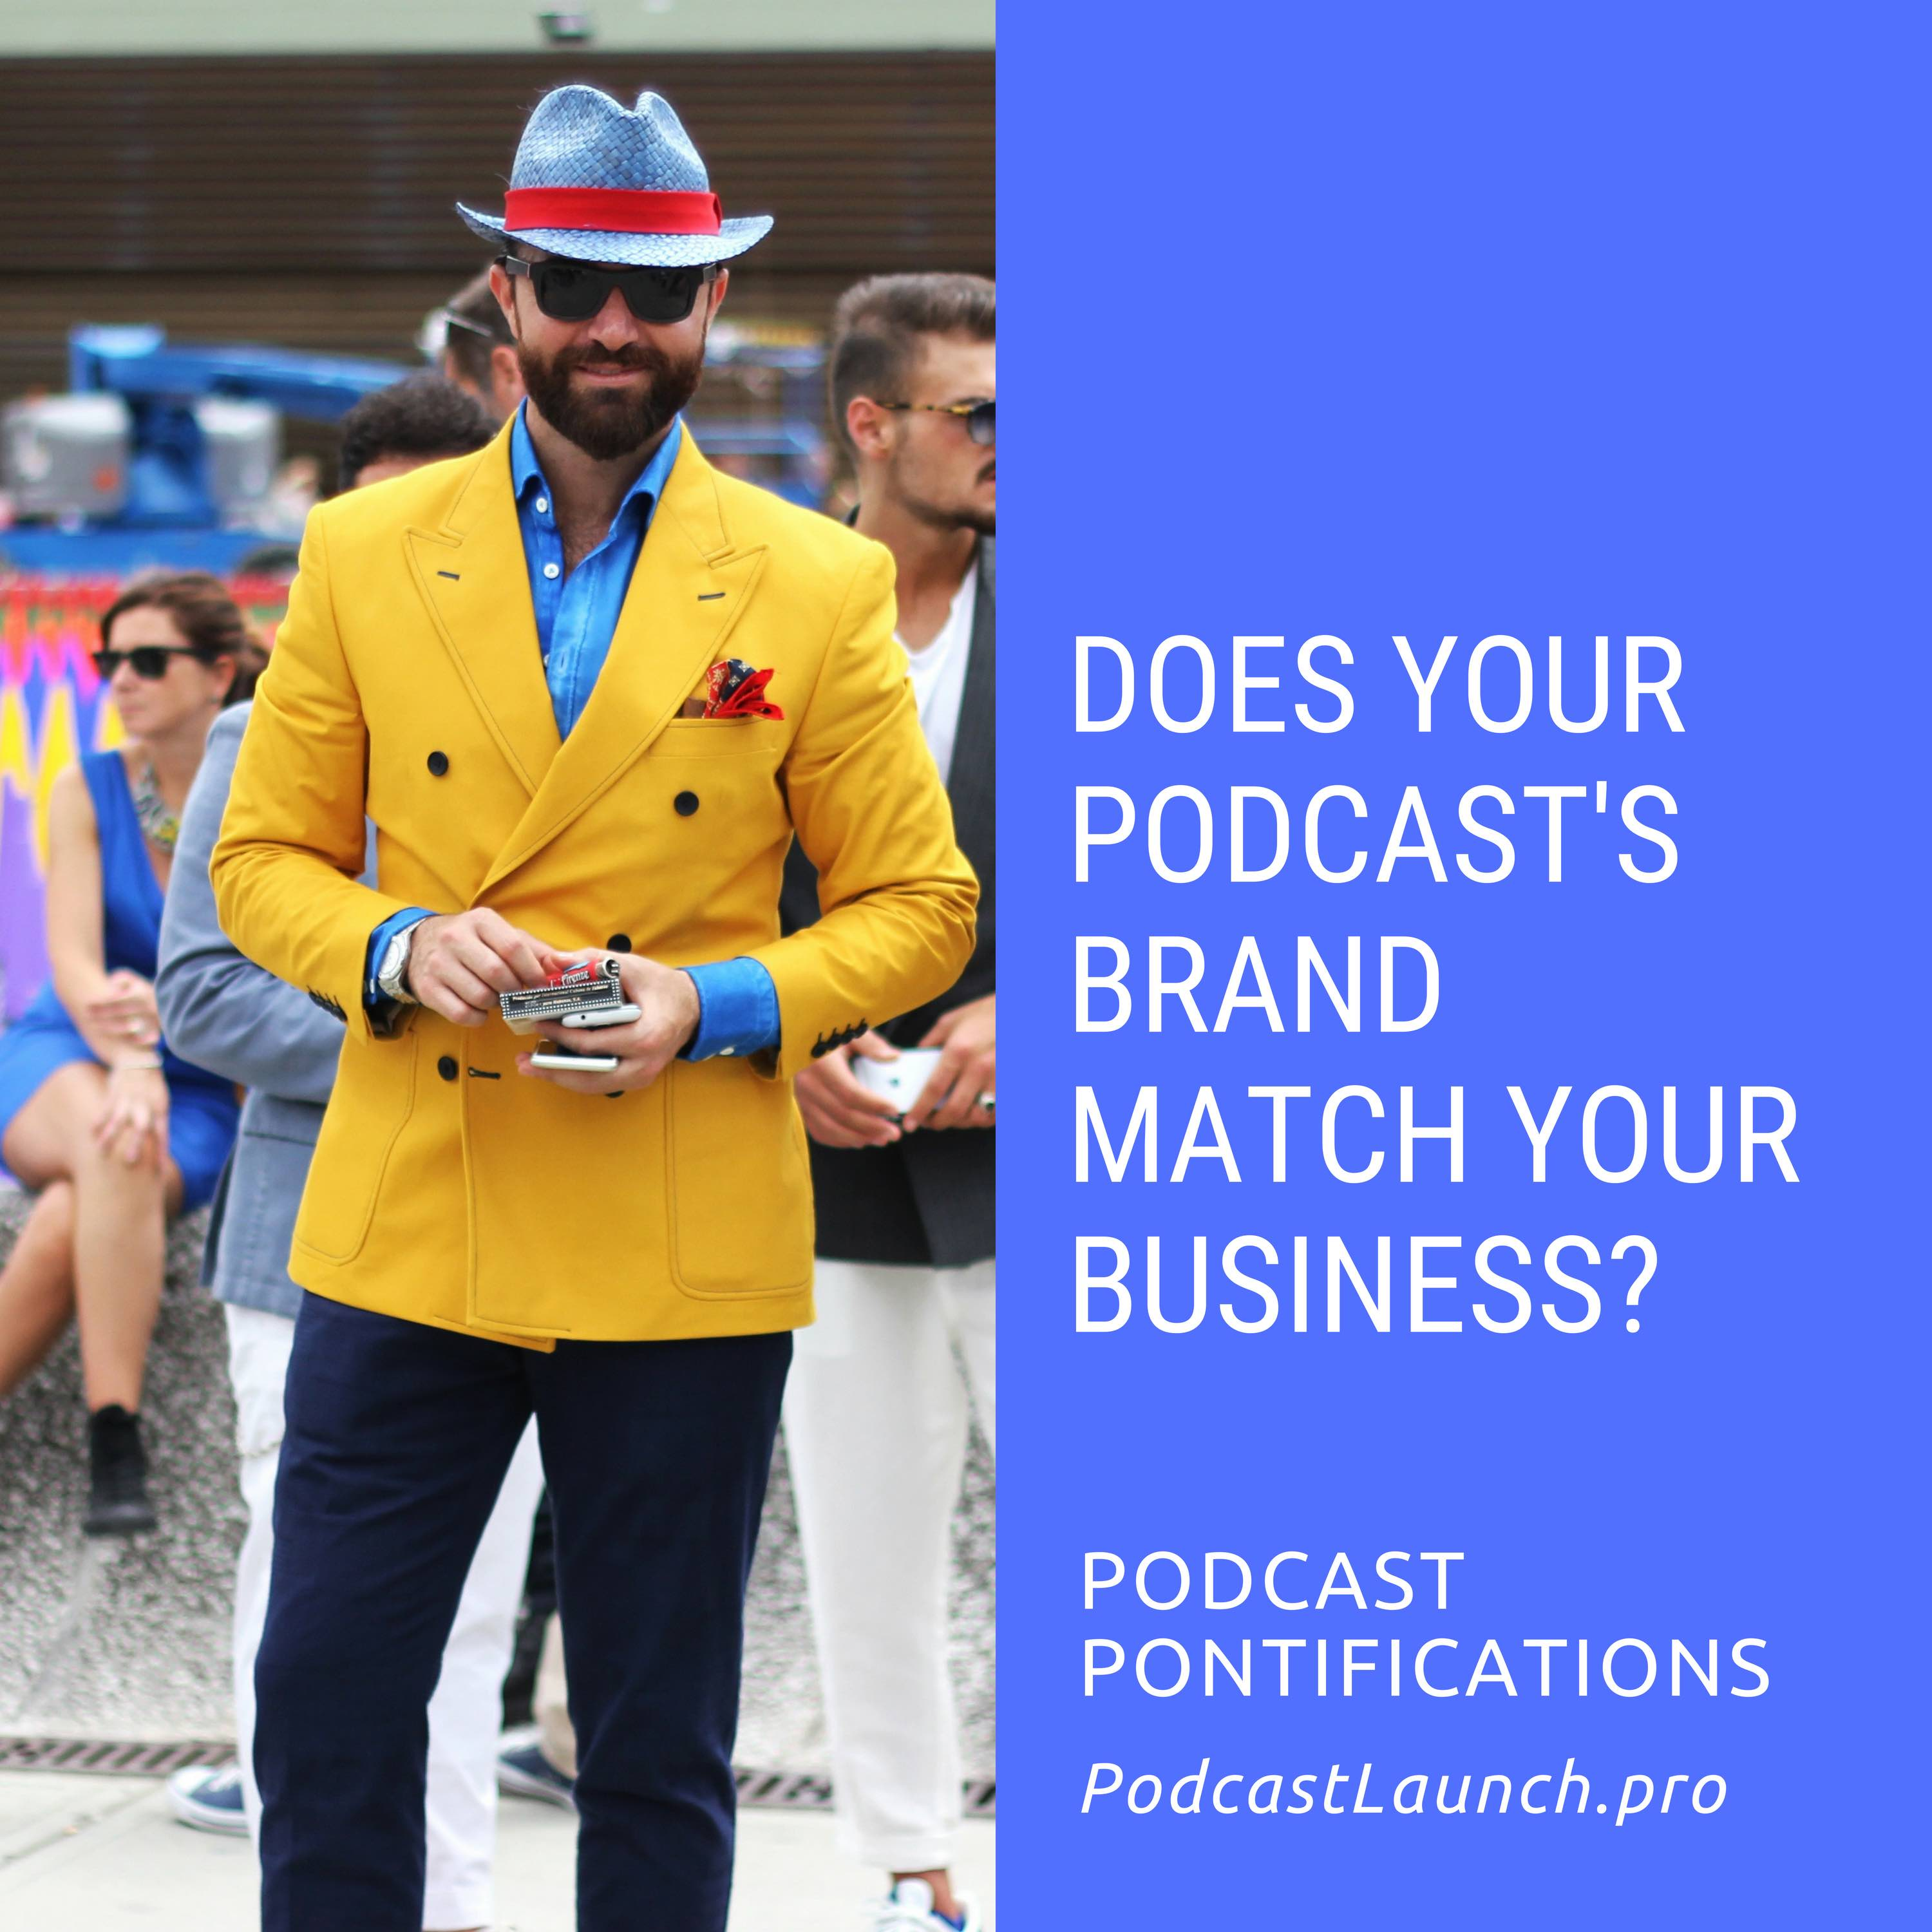 Does Your Podcast's Brand Match Your Business?